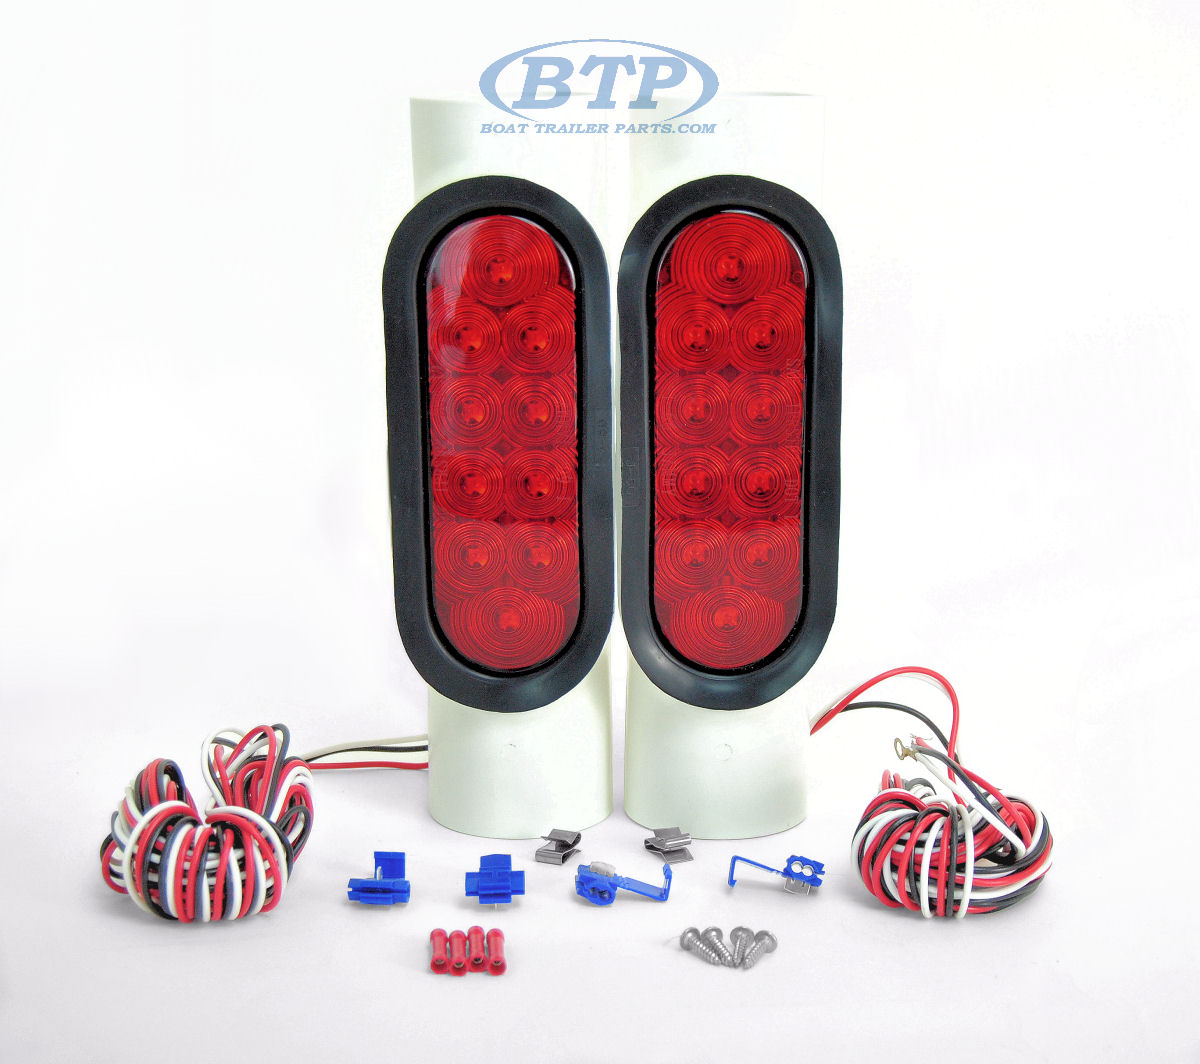 Boat Trailer Led And Incandescent Pipe Lights For Guide Poles Hydraulic Tongue Jack Moreover 4 Flat Wiring Light Kit